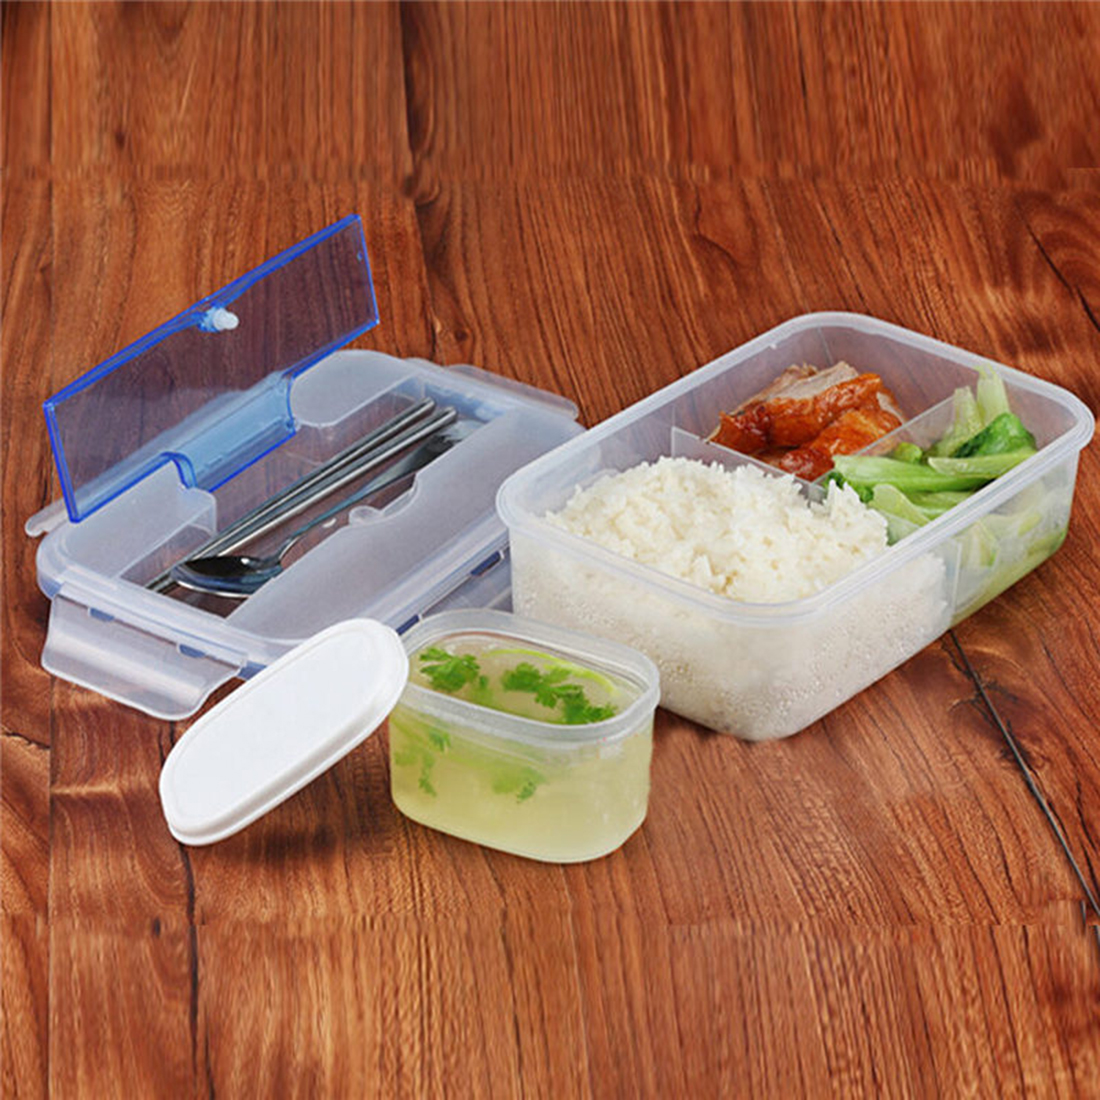 Modern Ecofriendly Outdoor Portable Microwave Lunch Box with Soup Bowl Chopsticks Spoon Food Containers